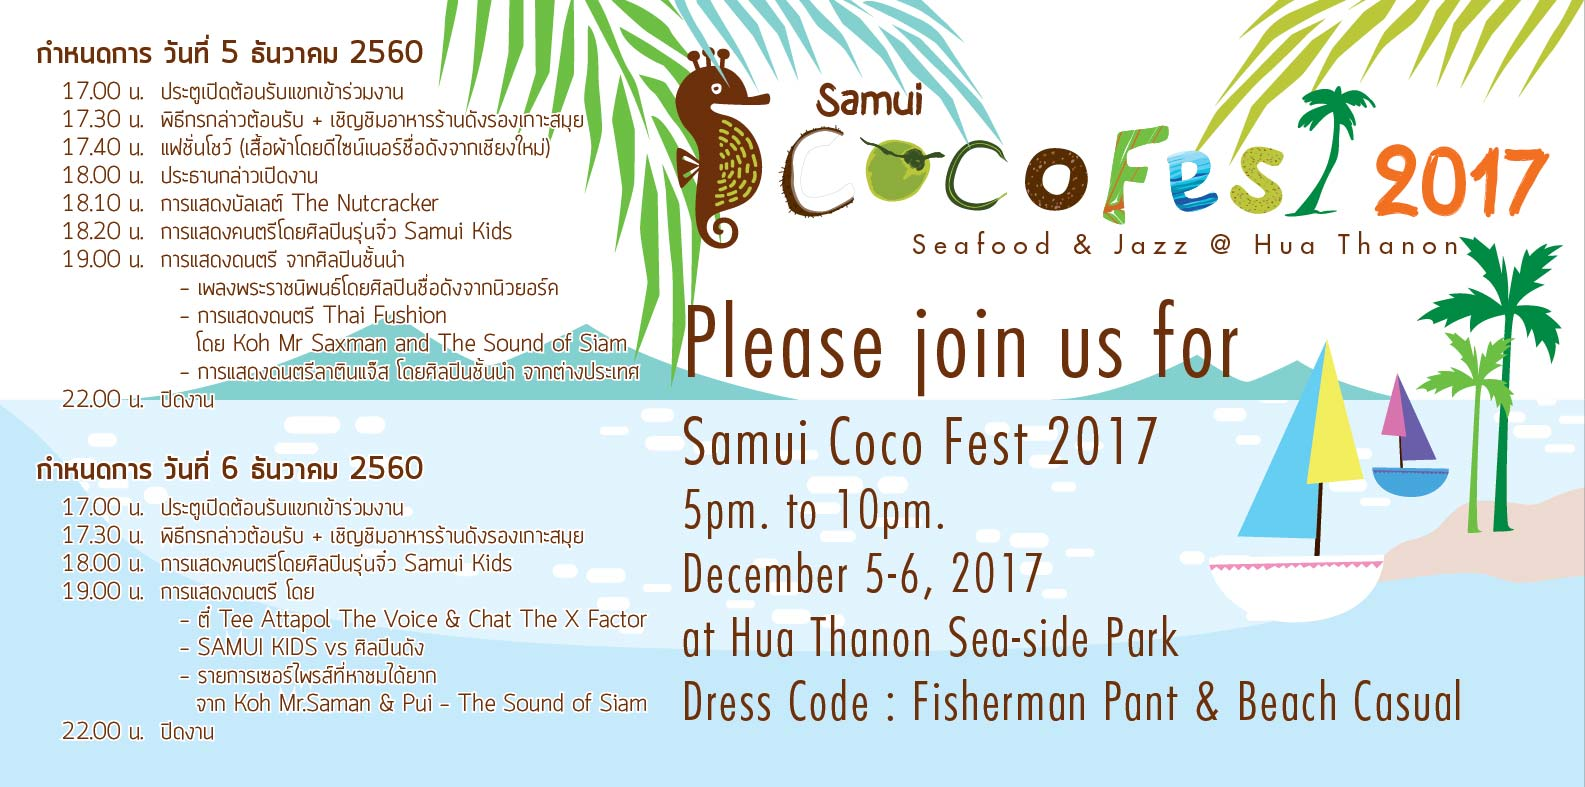 Enjoy seafood and Jazz at Samui Coco Fest 2017 – postponed by one day | Samui Times